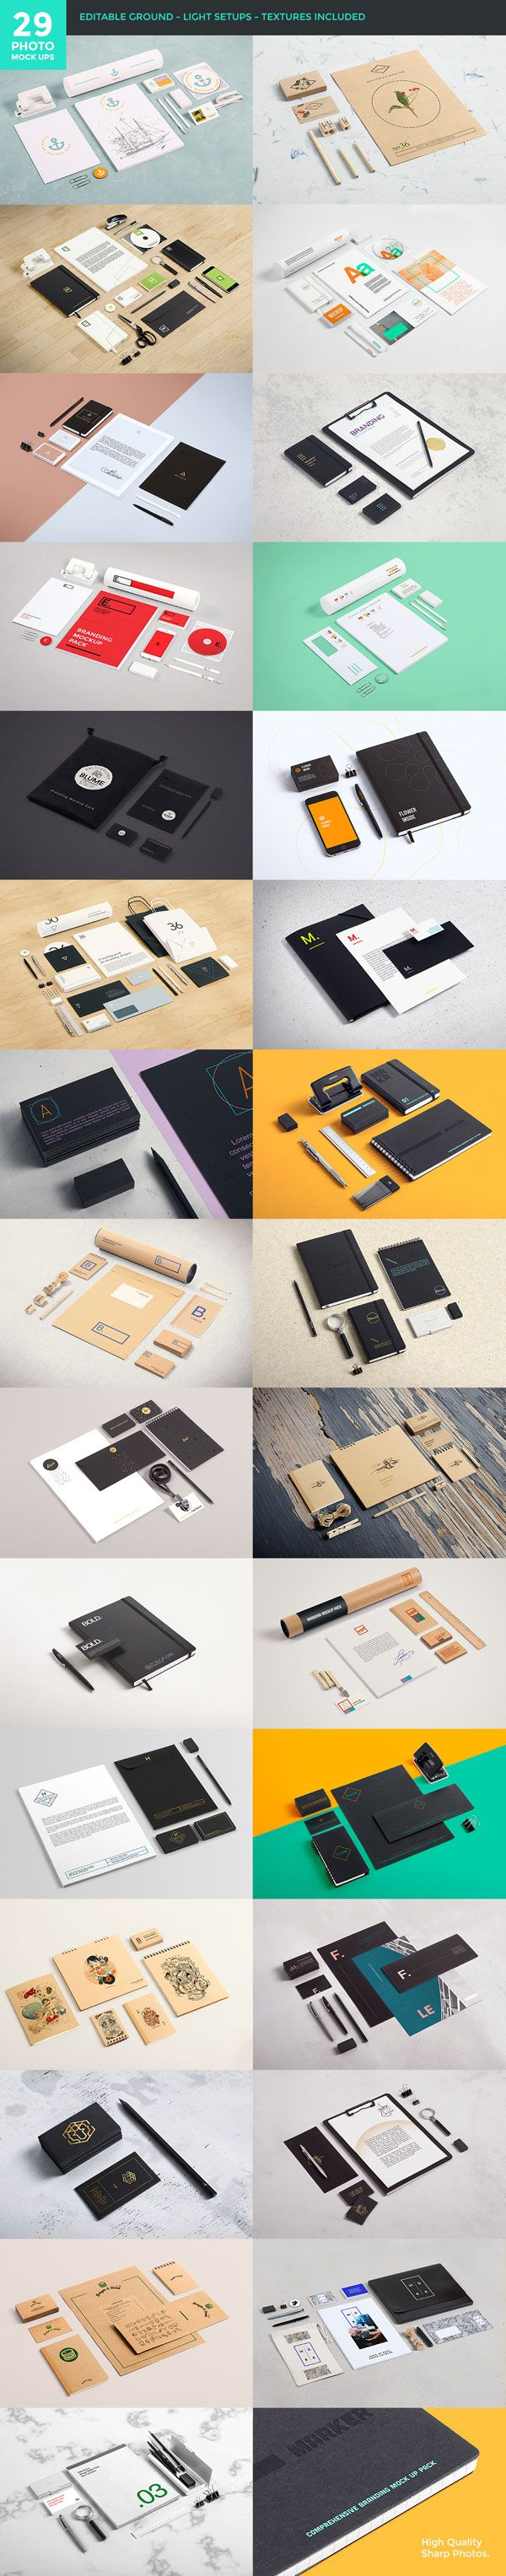 The 29 photo mockups with editable backgrounds, light setups, and included textures.